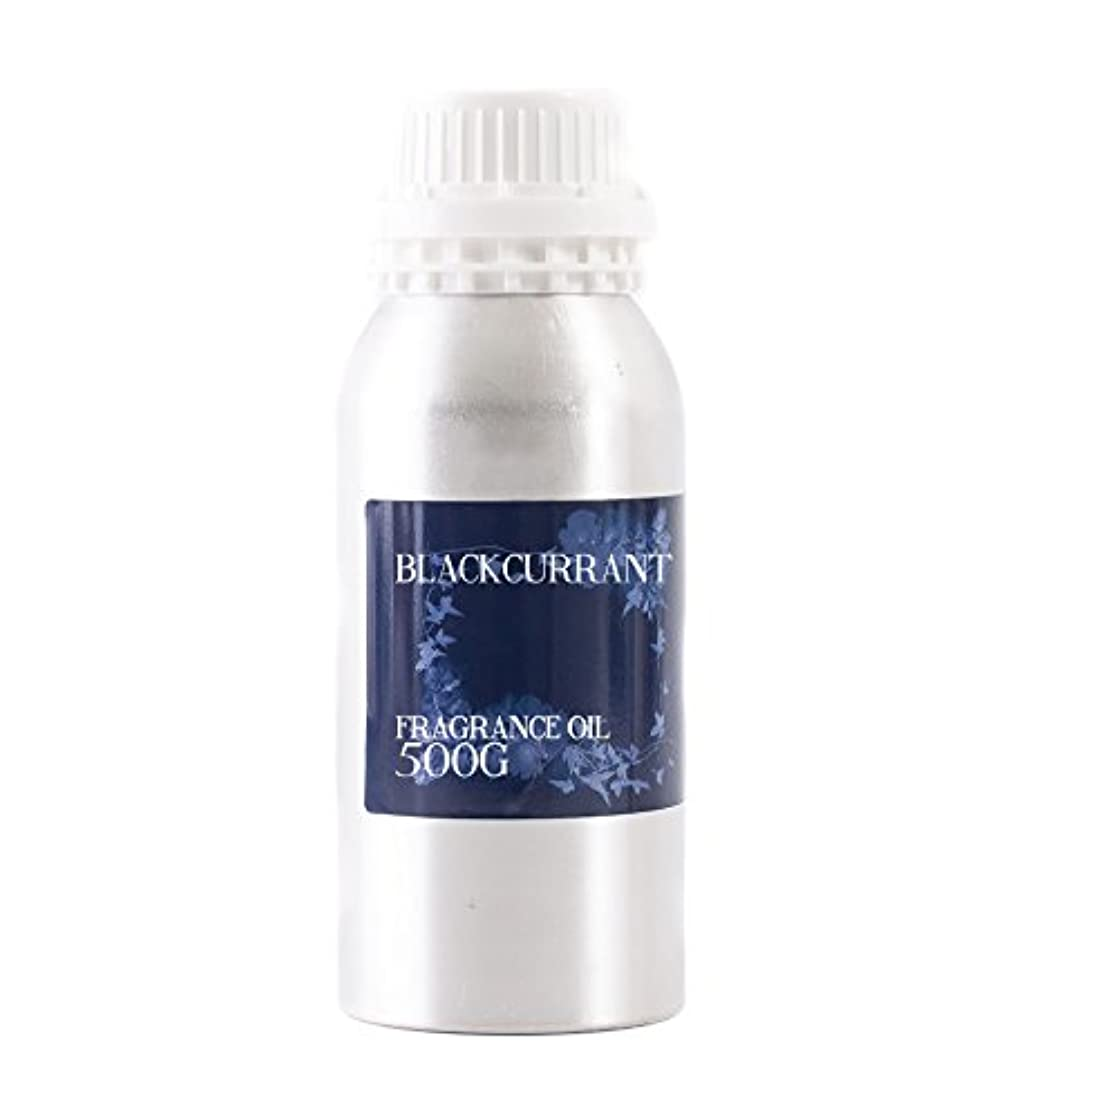 ヒョウ貪欲現代のMystic Moments | Blackcurrant Fragrance Oil - 500g